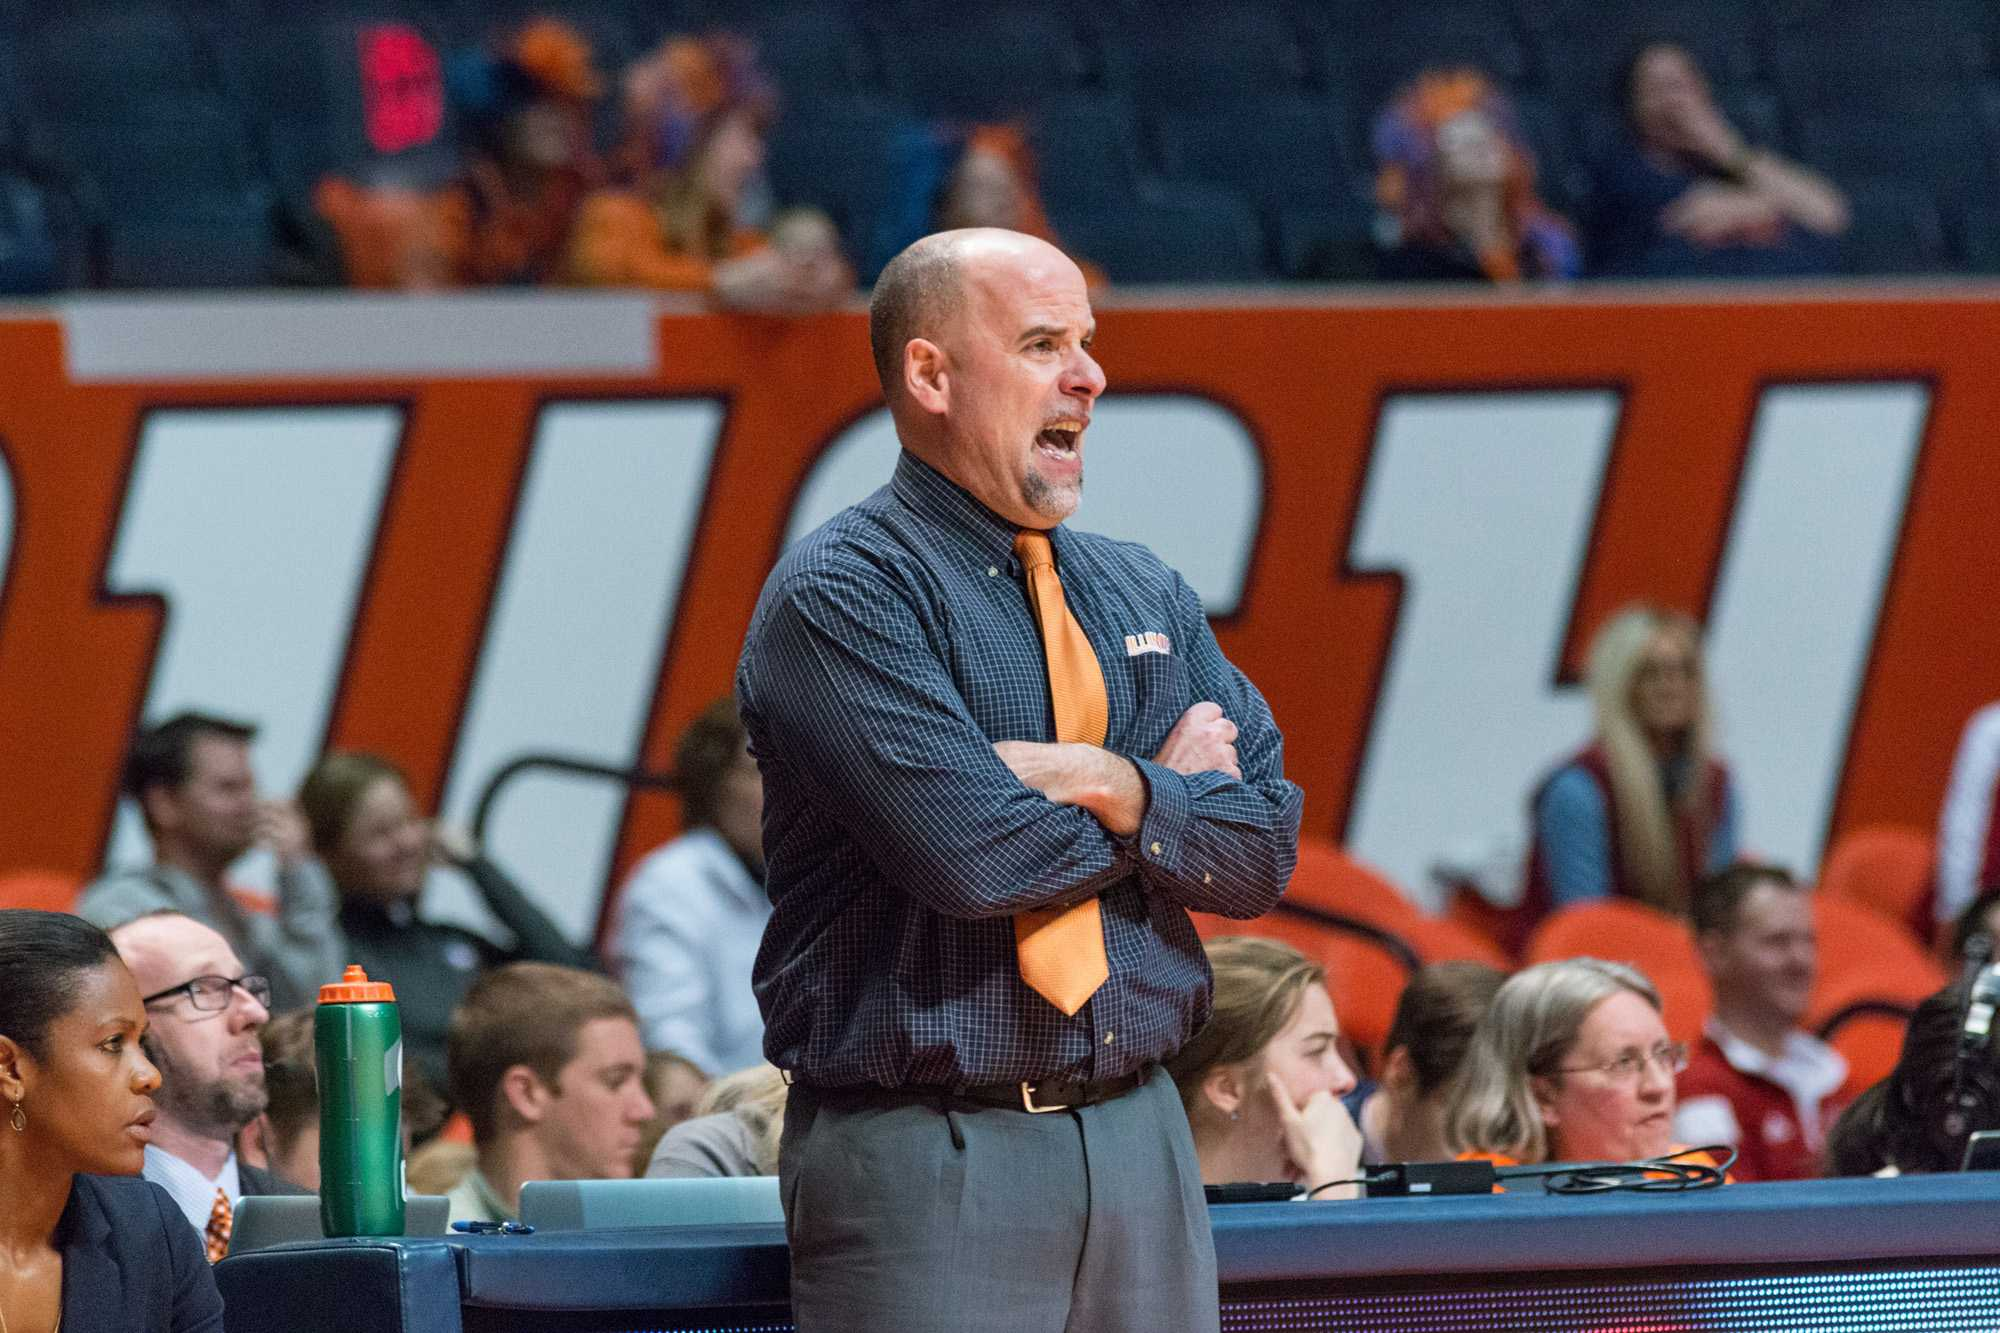 Illinois head coach Matt Bollant shouts instructions at his team during the game against Indiana at the State Farm Center on Feb. 10. The Illini lost 80-68.